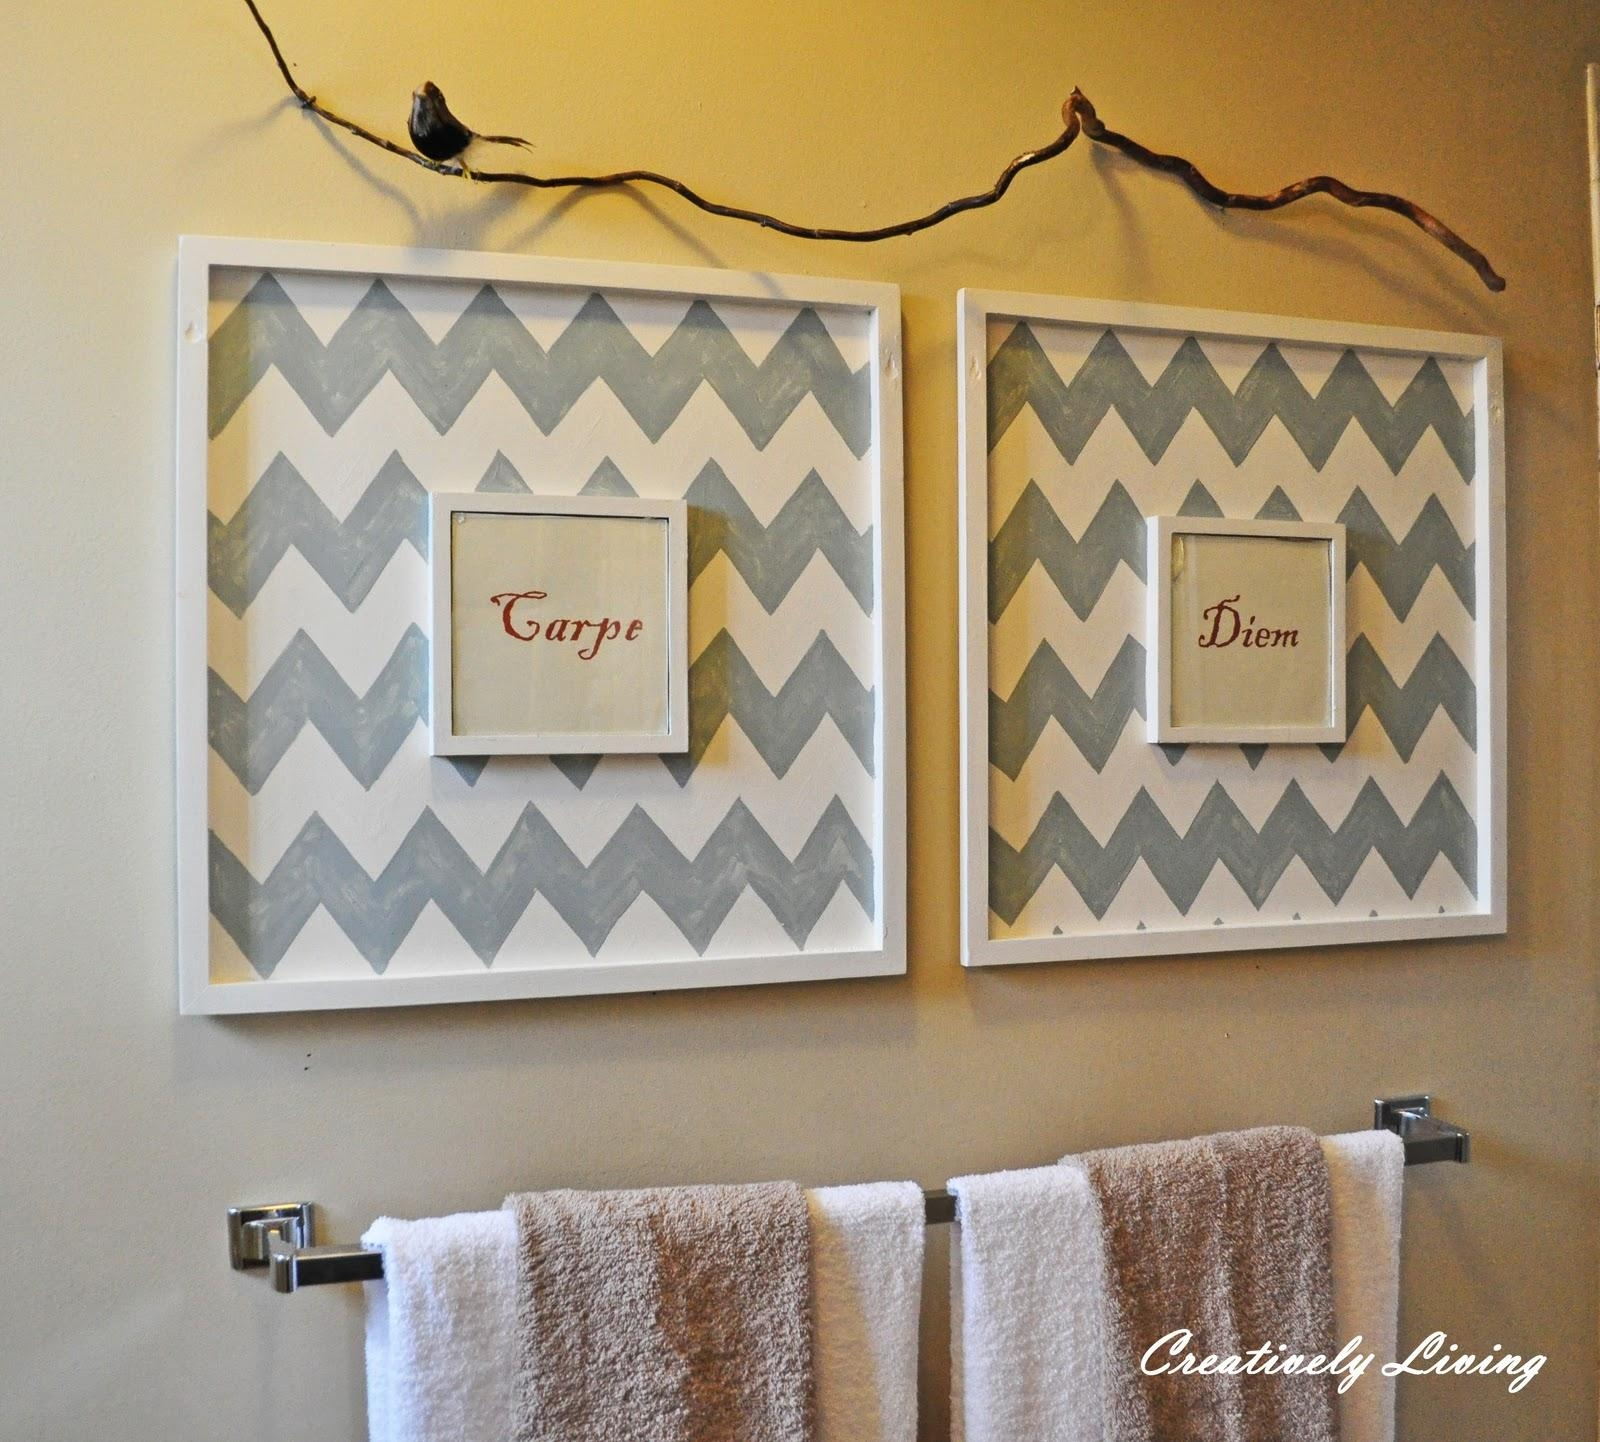 Bathroom Wall Art – Creatively Living Blog Intended For Shower Room Wall Art (Image 3 of 20)